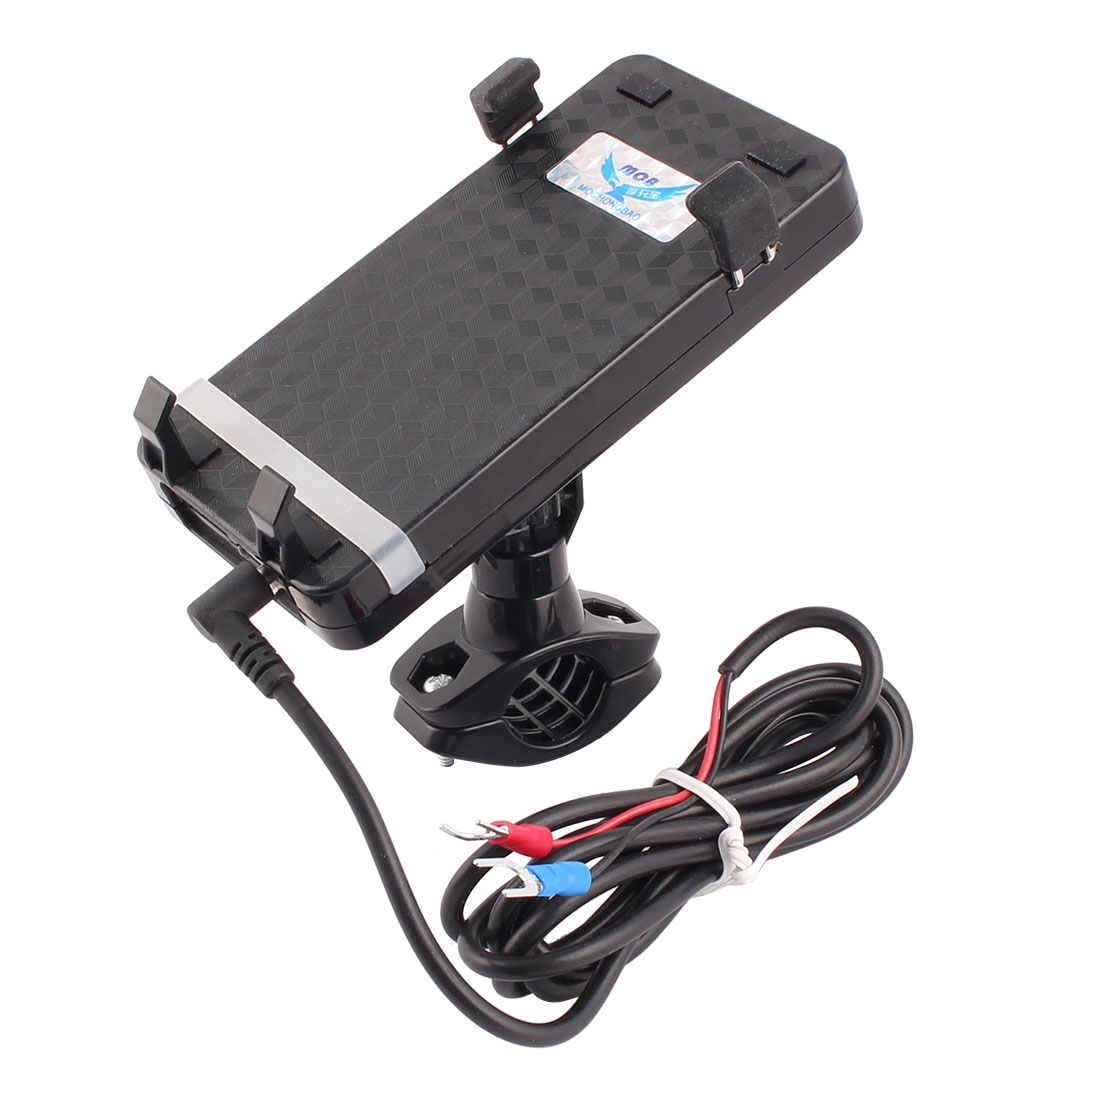 Motorcycle Scooter Universal Cell Phone GPS USB Charger Holder Mount Bracket